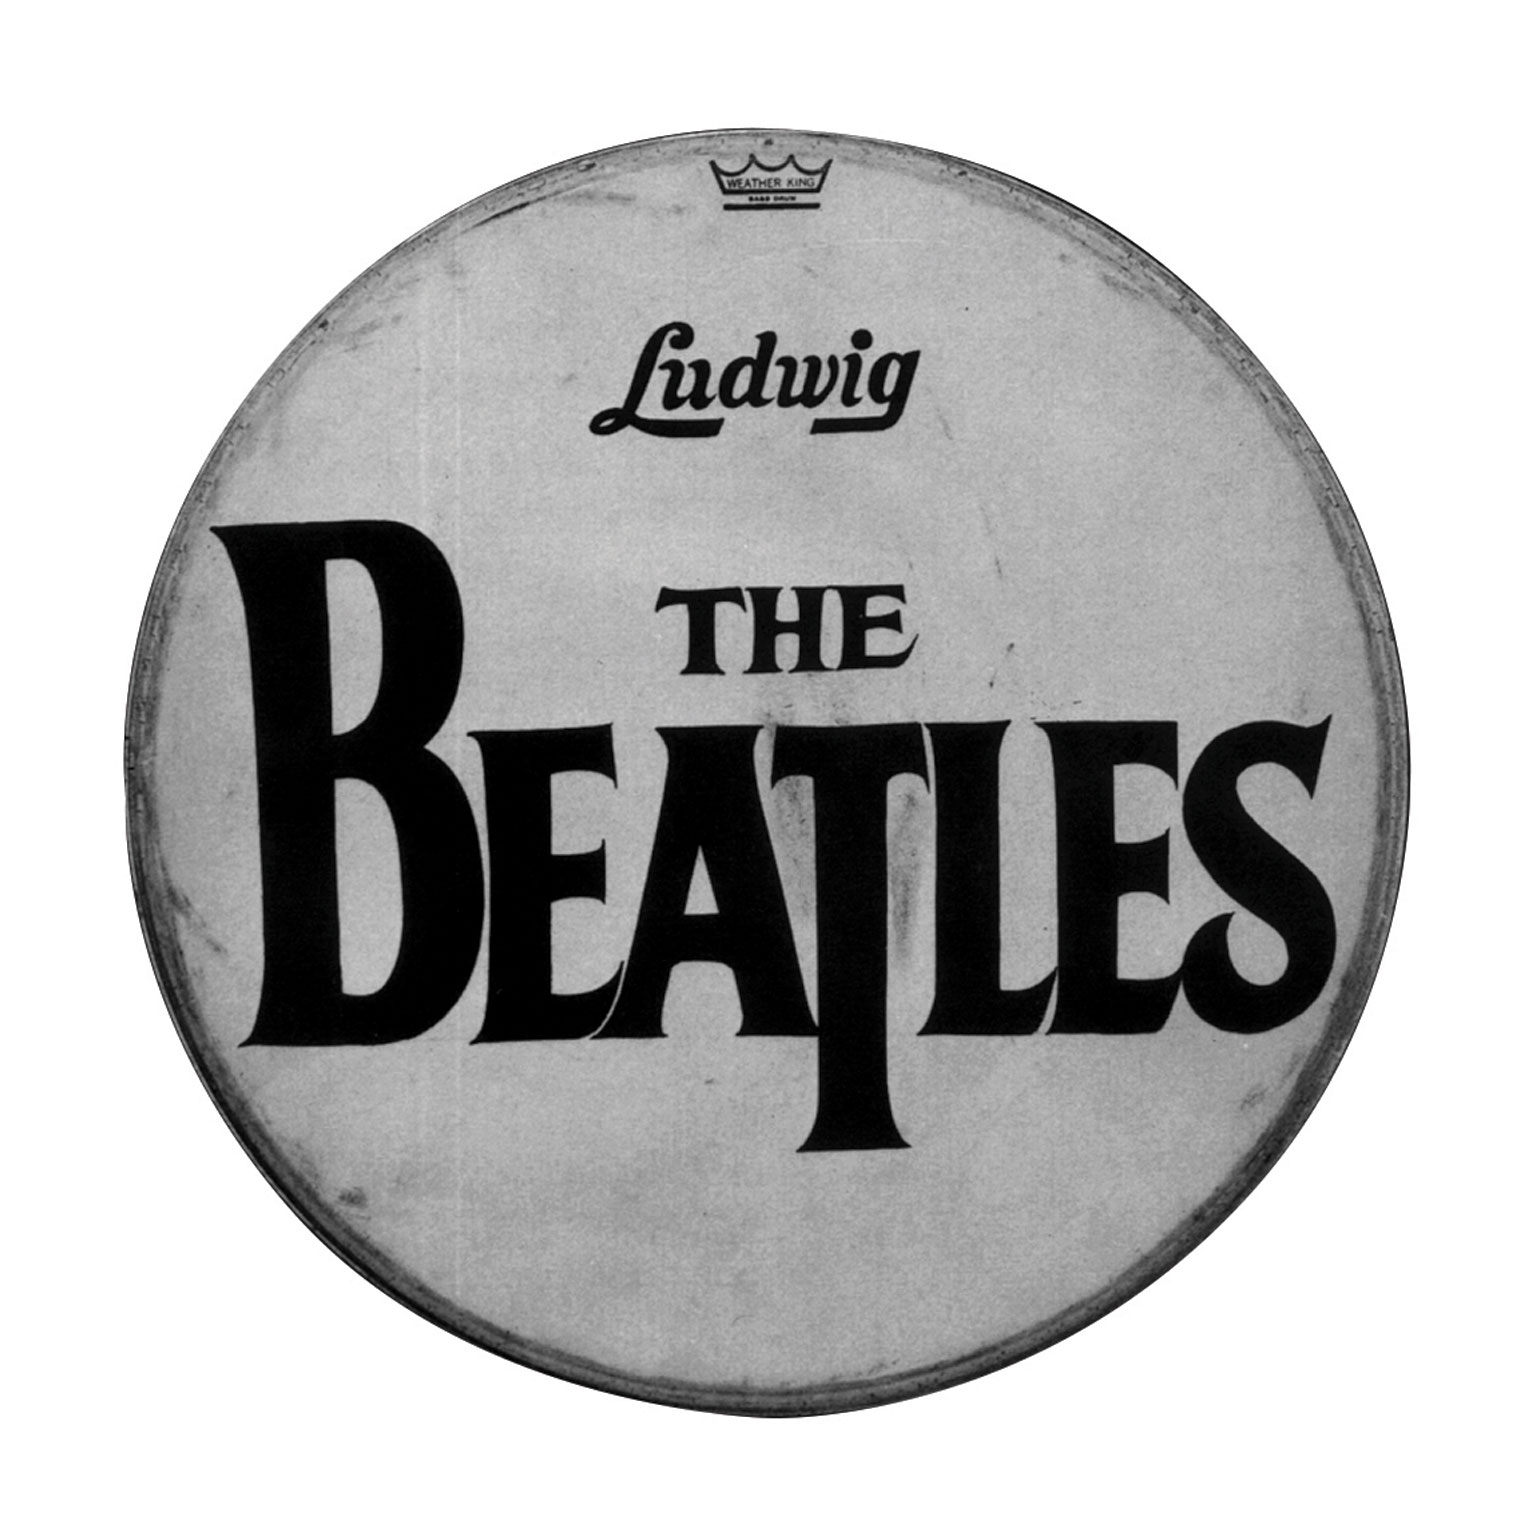 Now The Beatles Logo Drumhead Can Be Seen By Invitation Only In Jim Irsays Office And Secret Memorabilia Room Inside Indianapolis Colts Headquarters